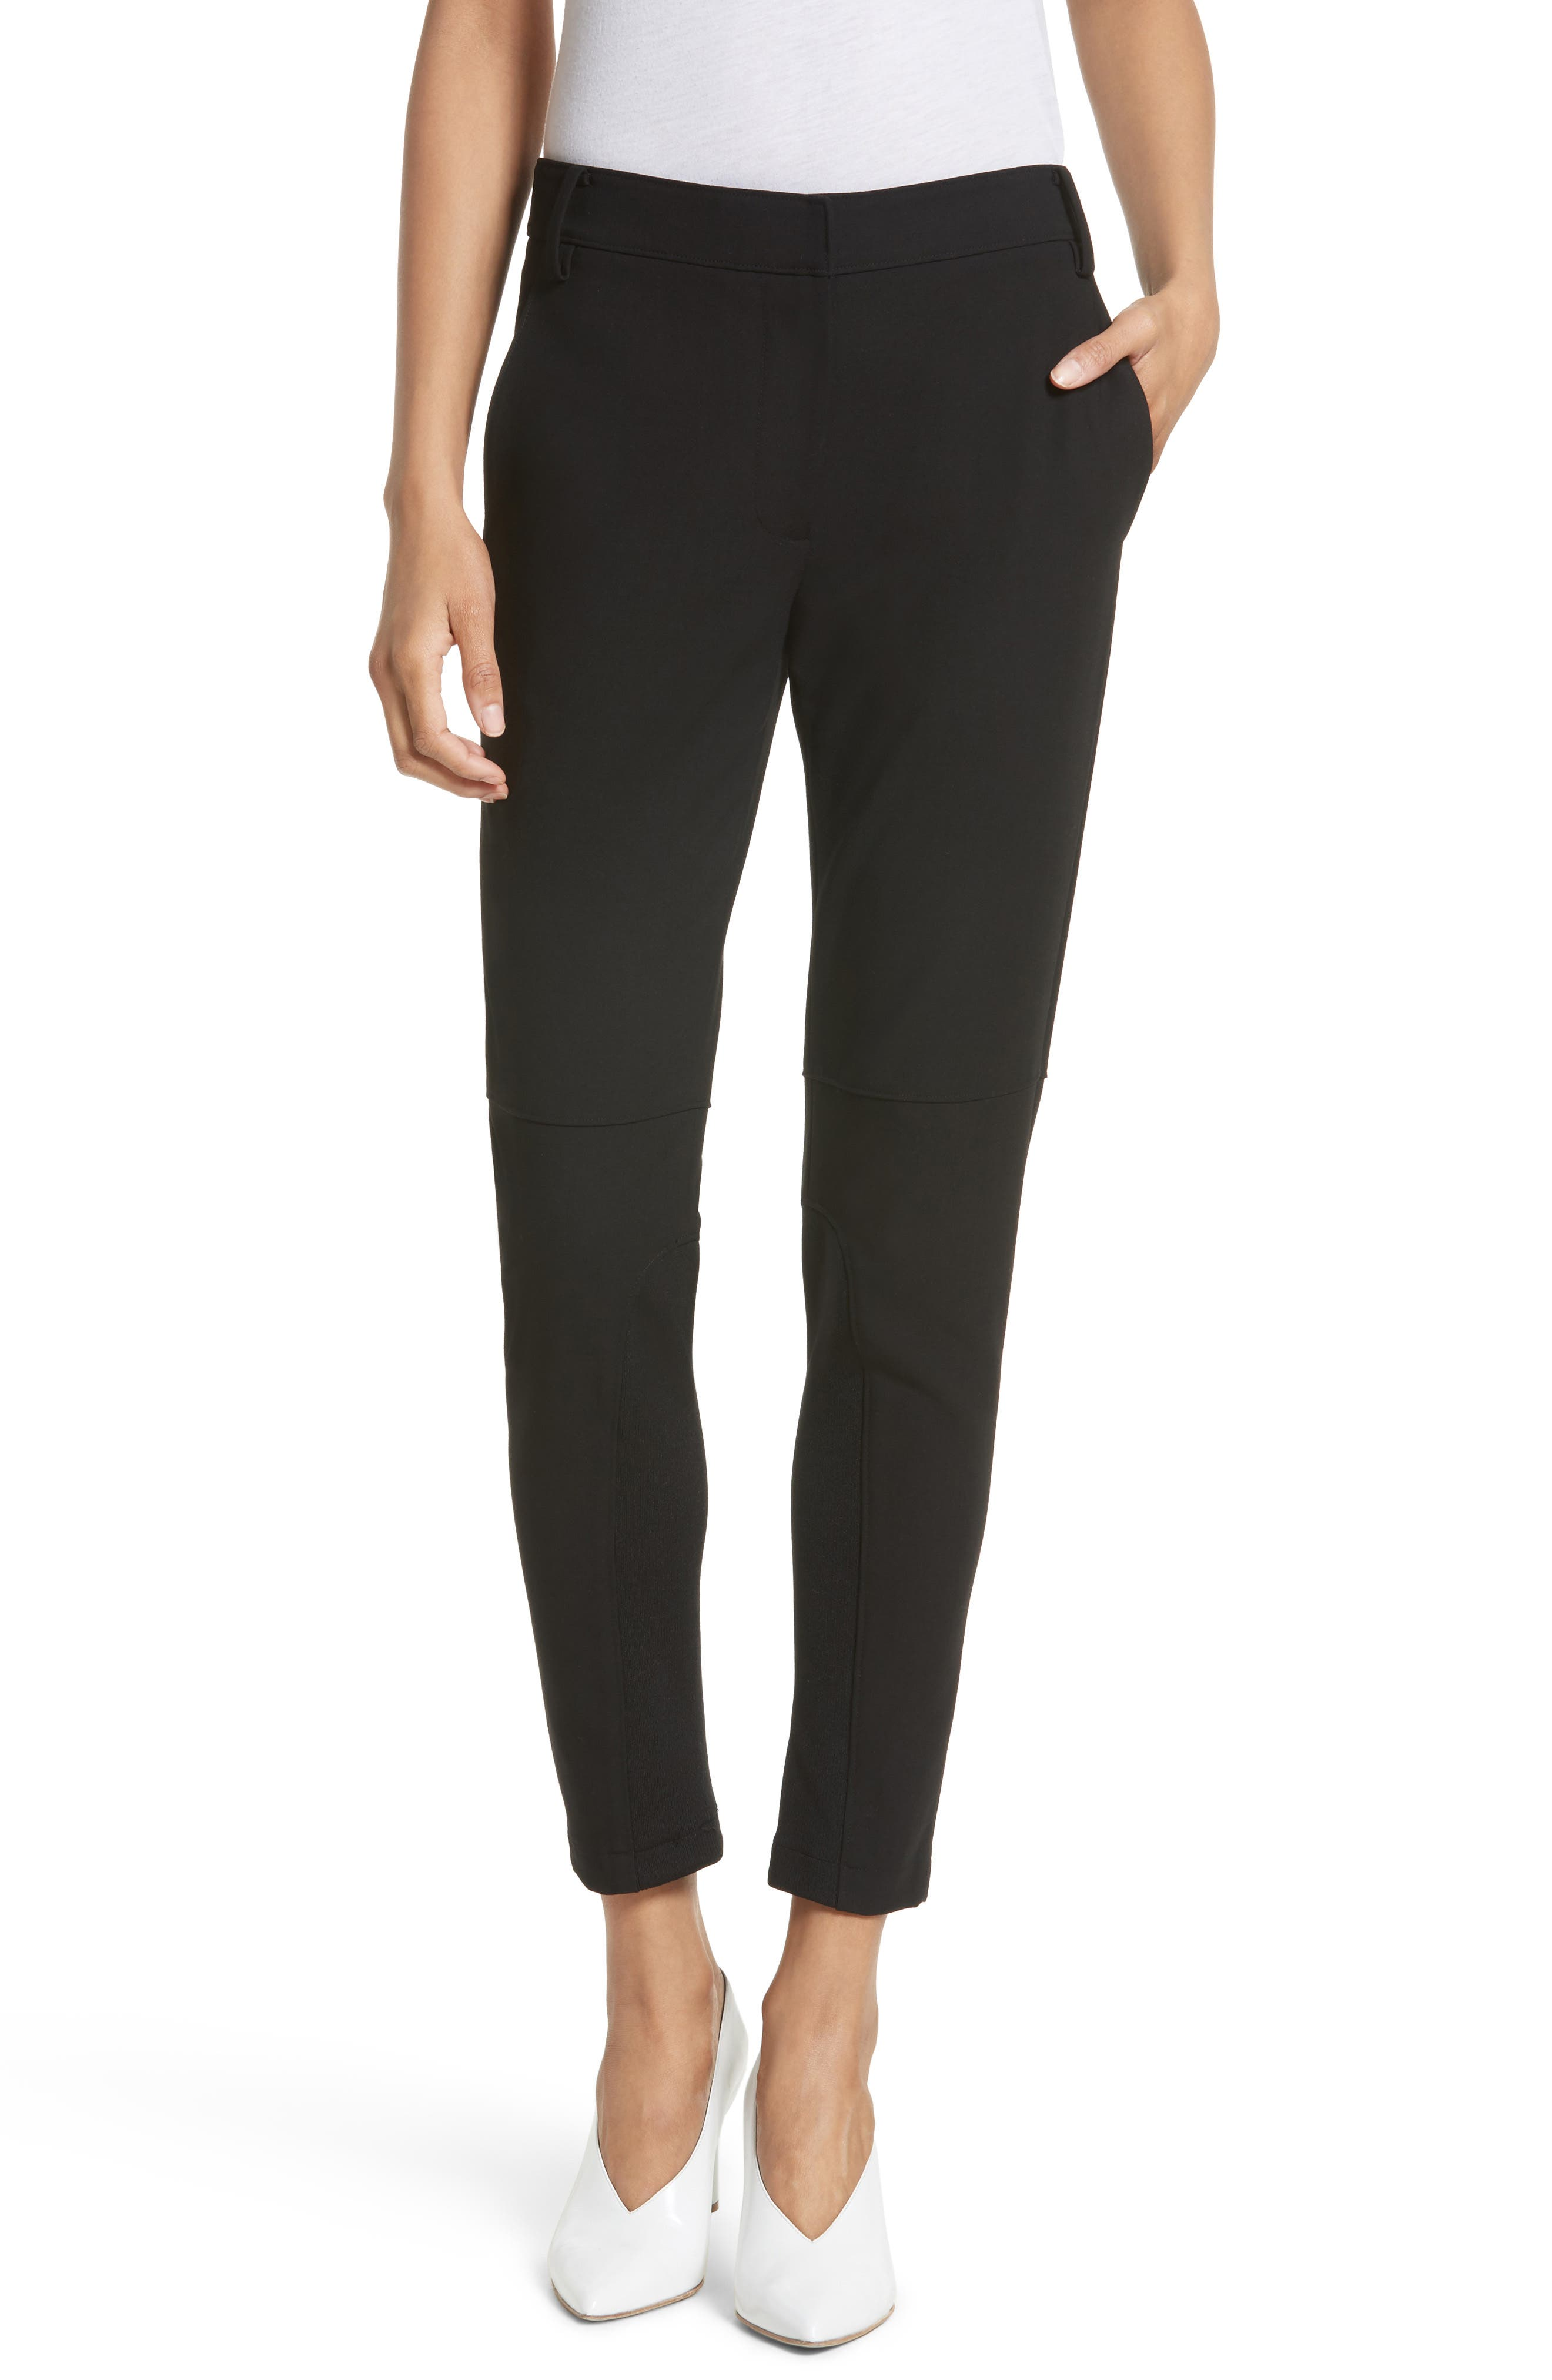 Main Image - Tibi Anson Stretch Insert Ankle Pants